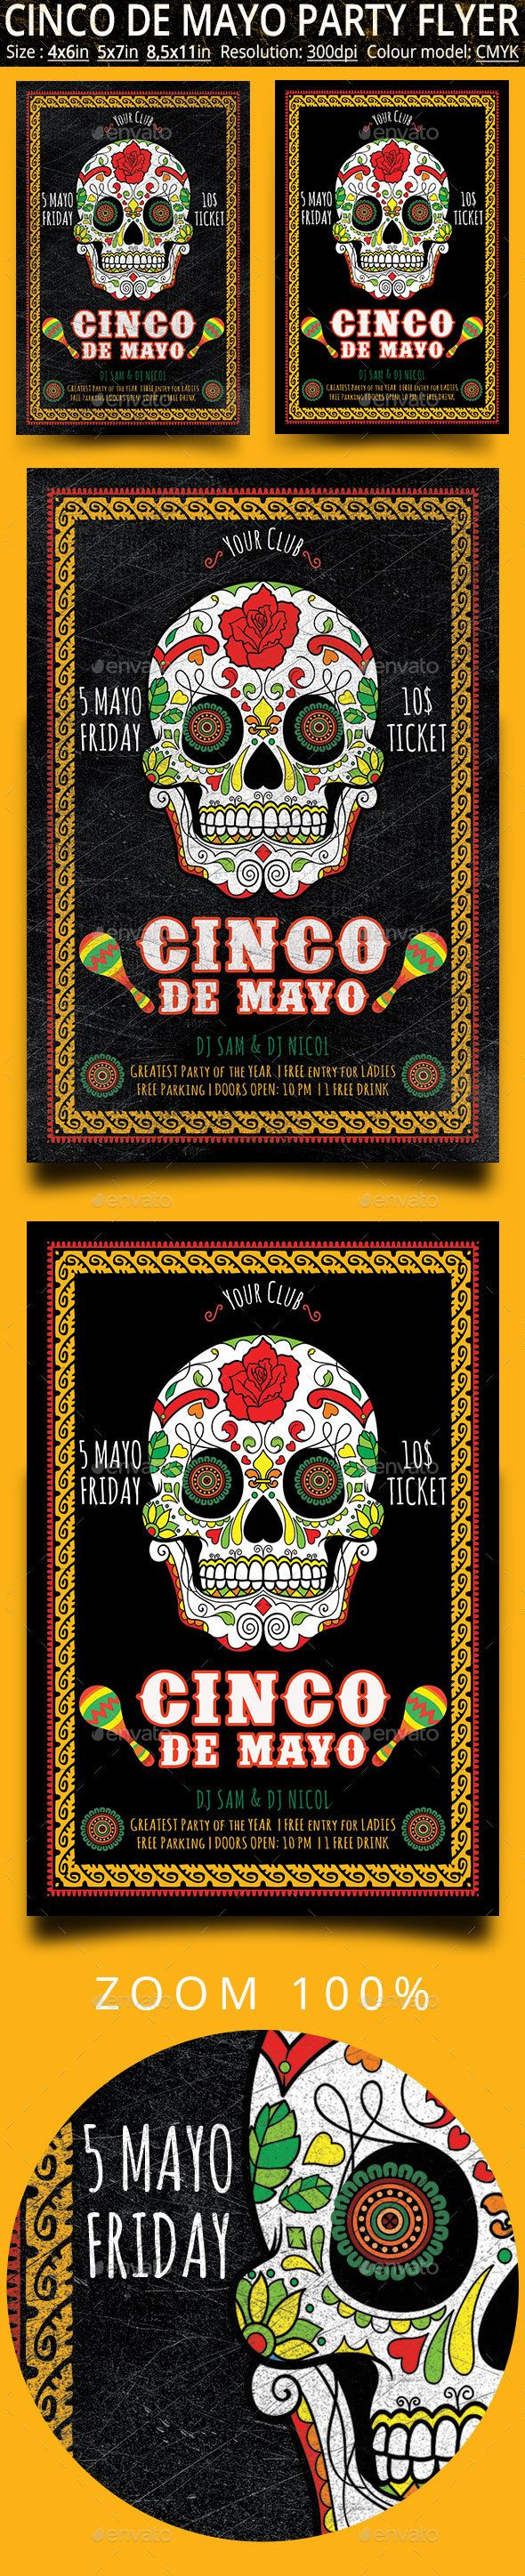 event flyer size pike productoseb co